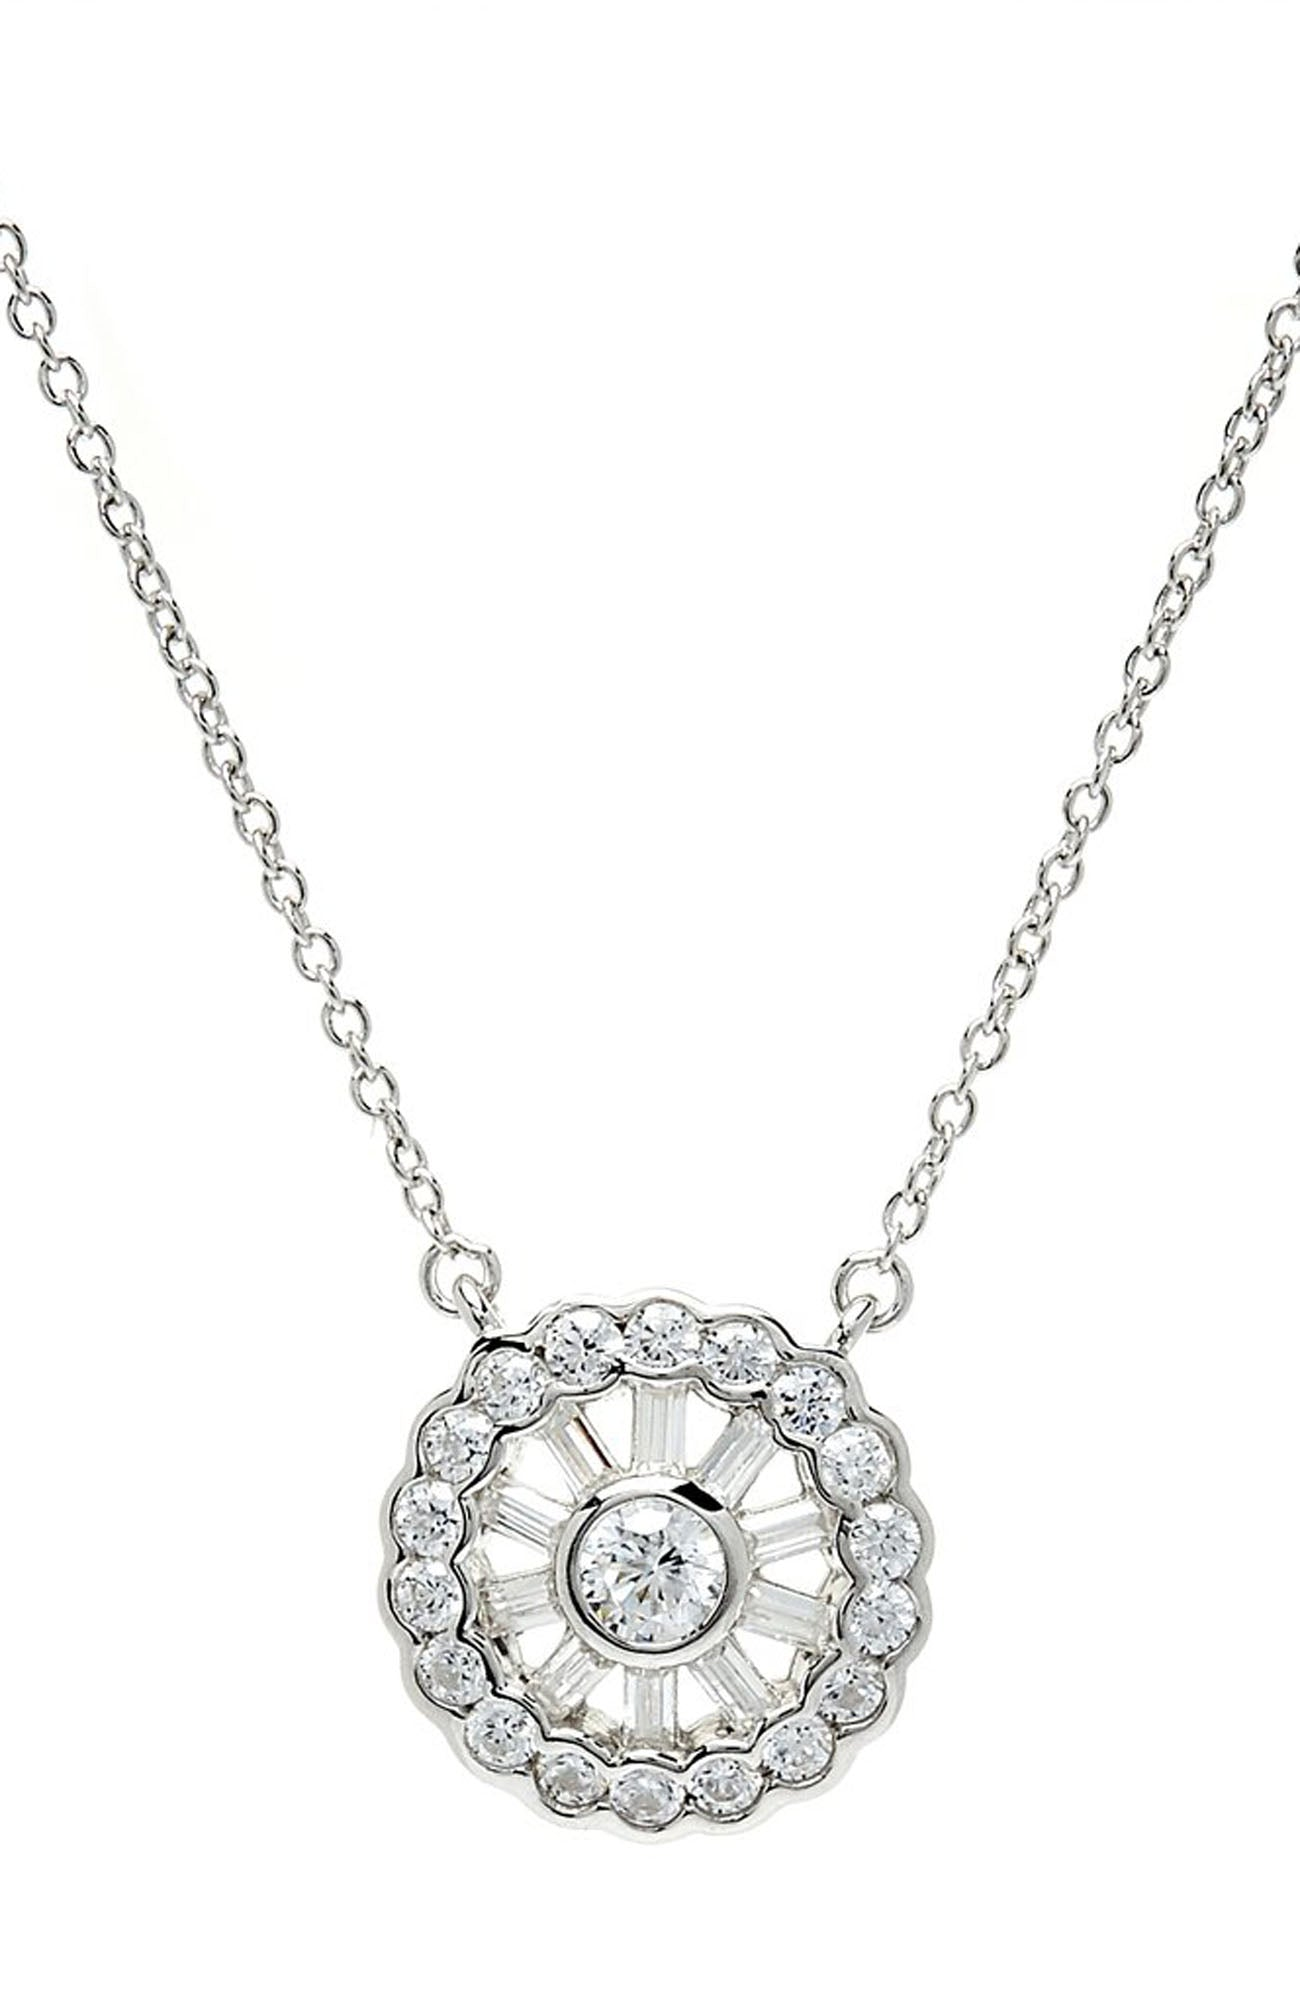 DAISY SILVER NECKLACE